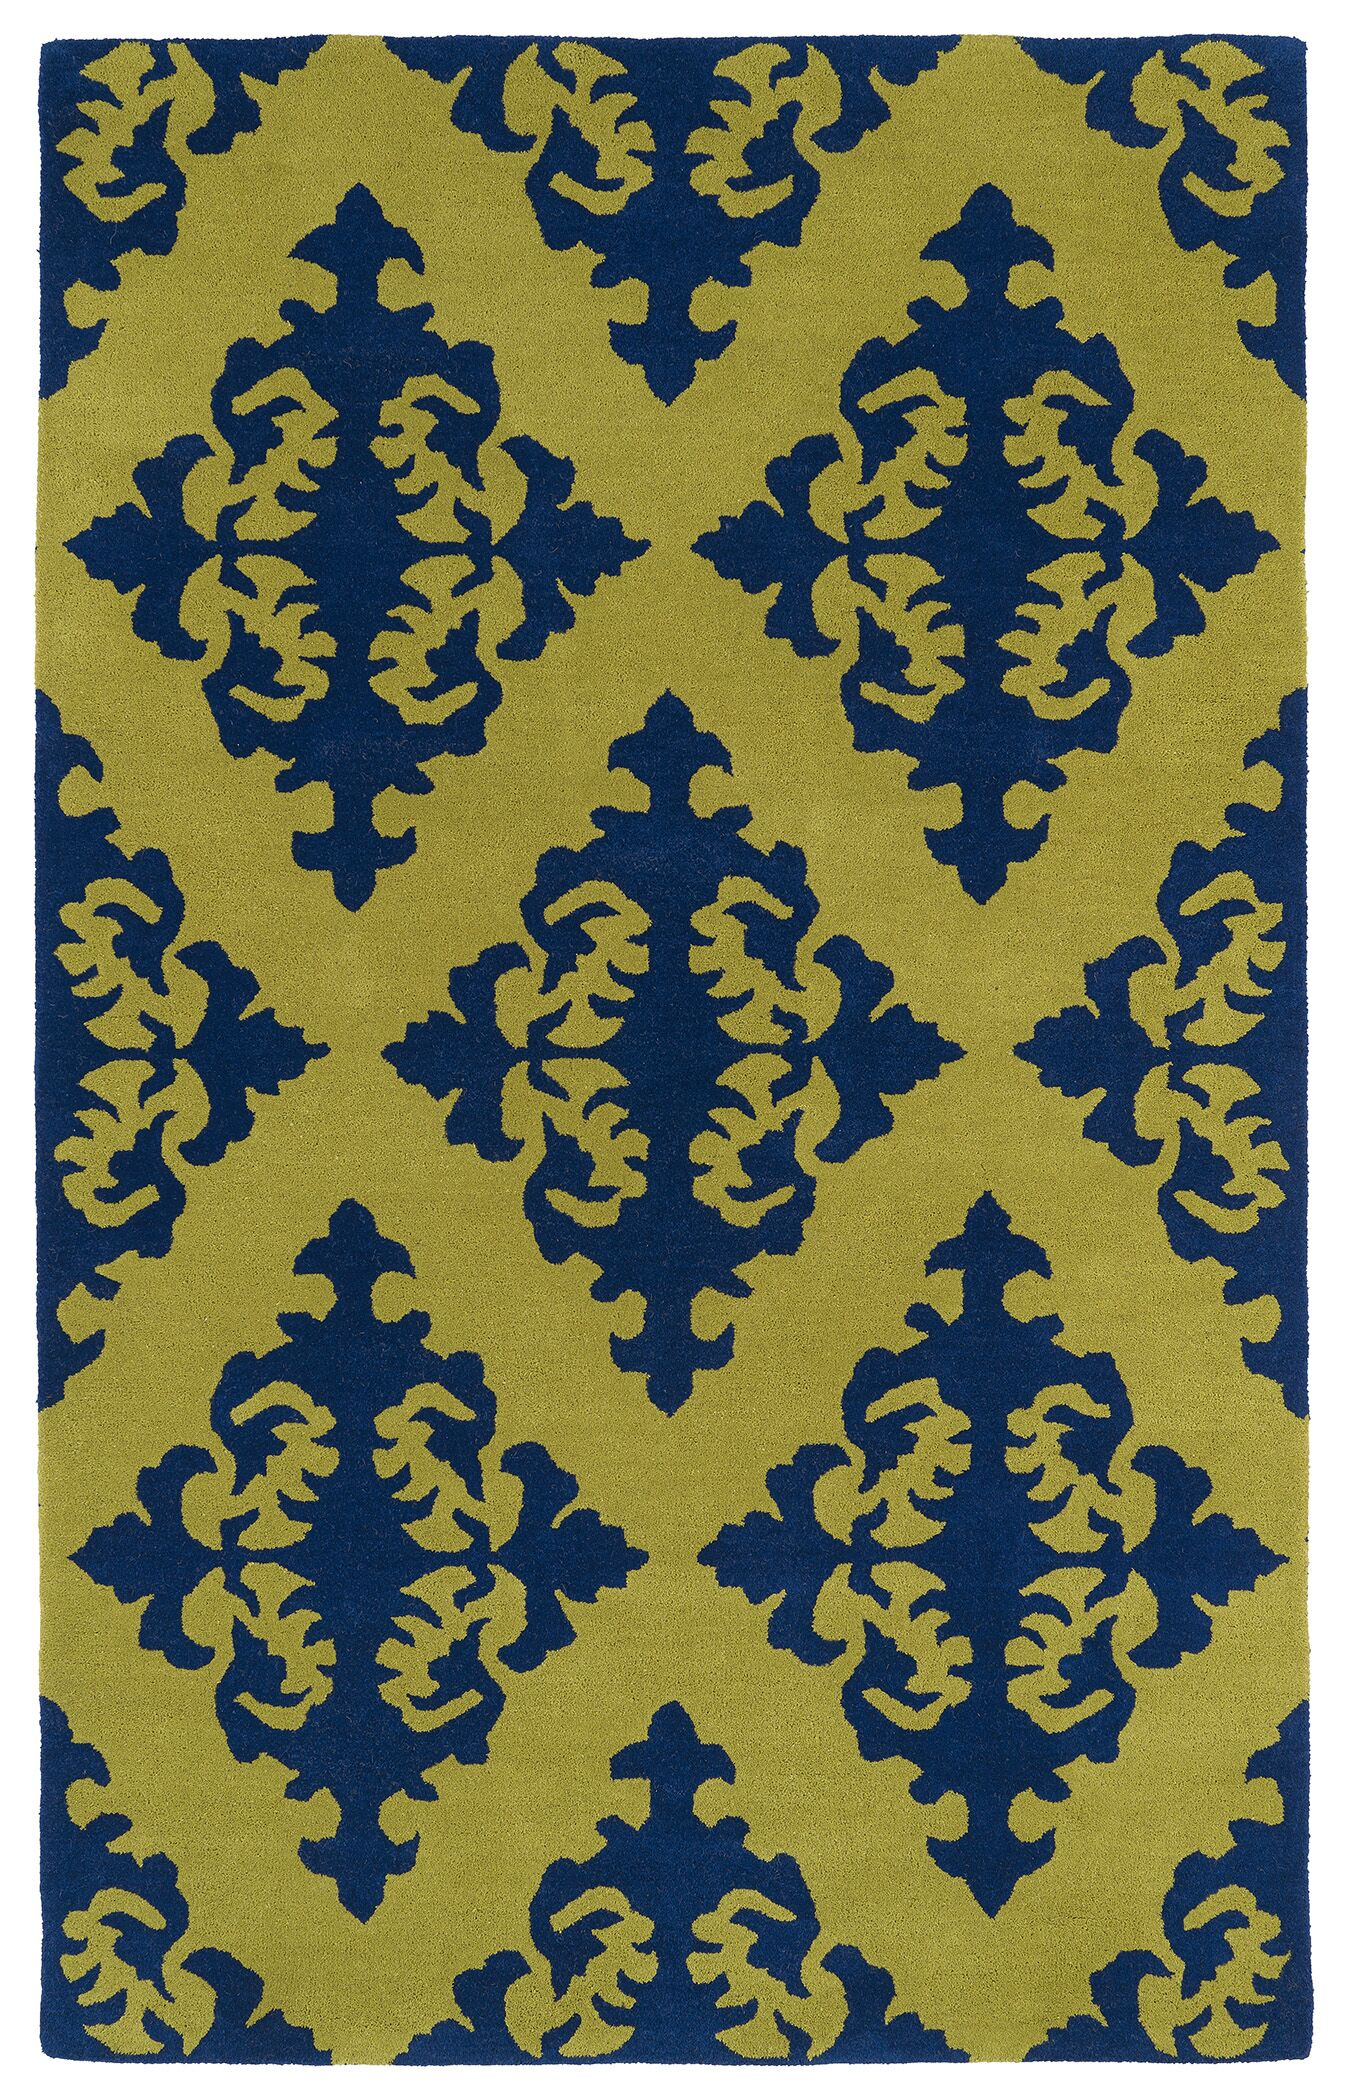 Slovan Wasabi Yellow/Blue Area Rug Rug Size: Rectangle 8' x 11'